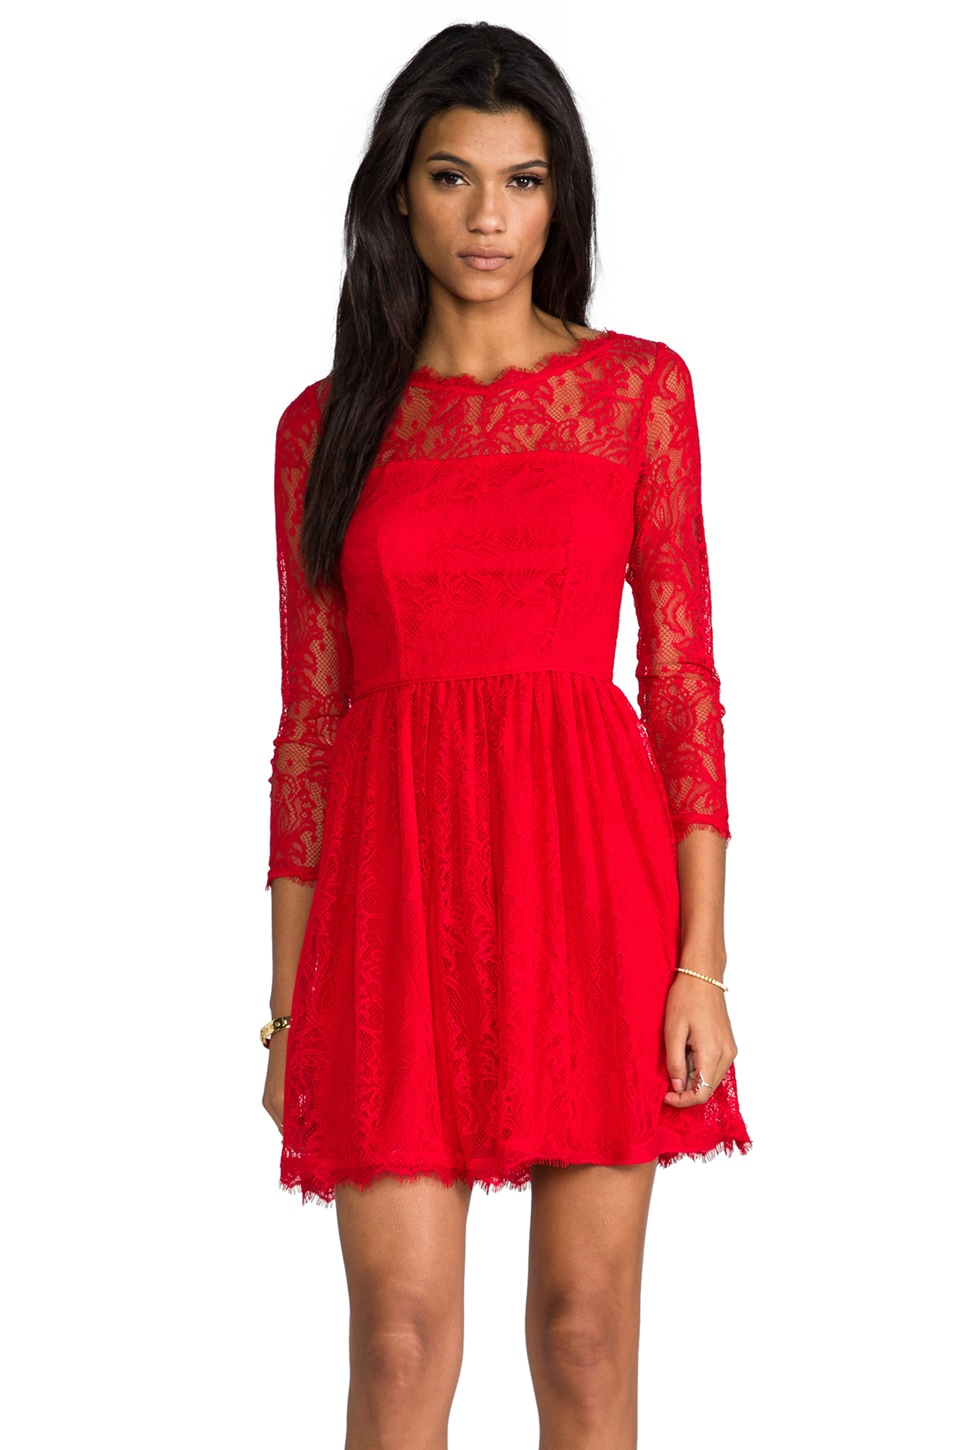 Juicy Couture Delicate Lace Dress in Lipstick Red